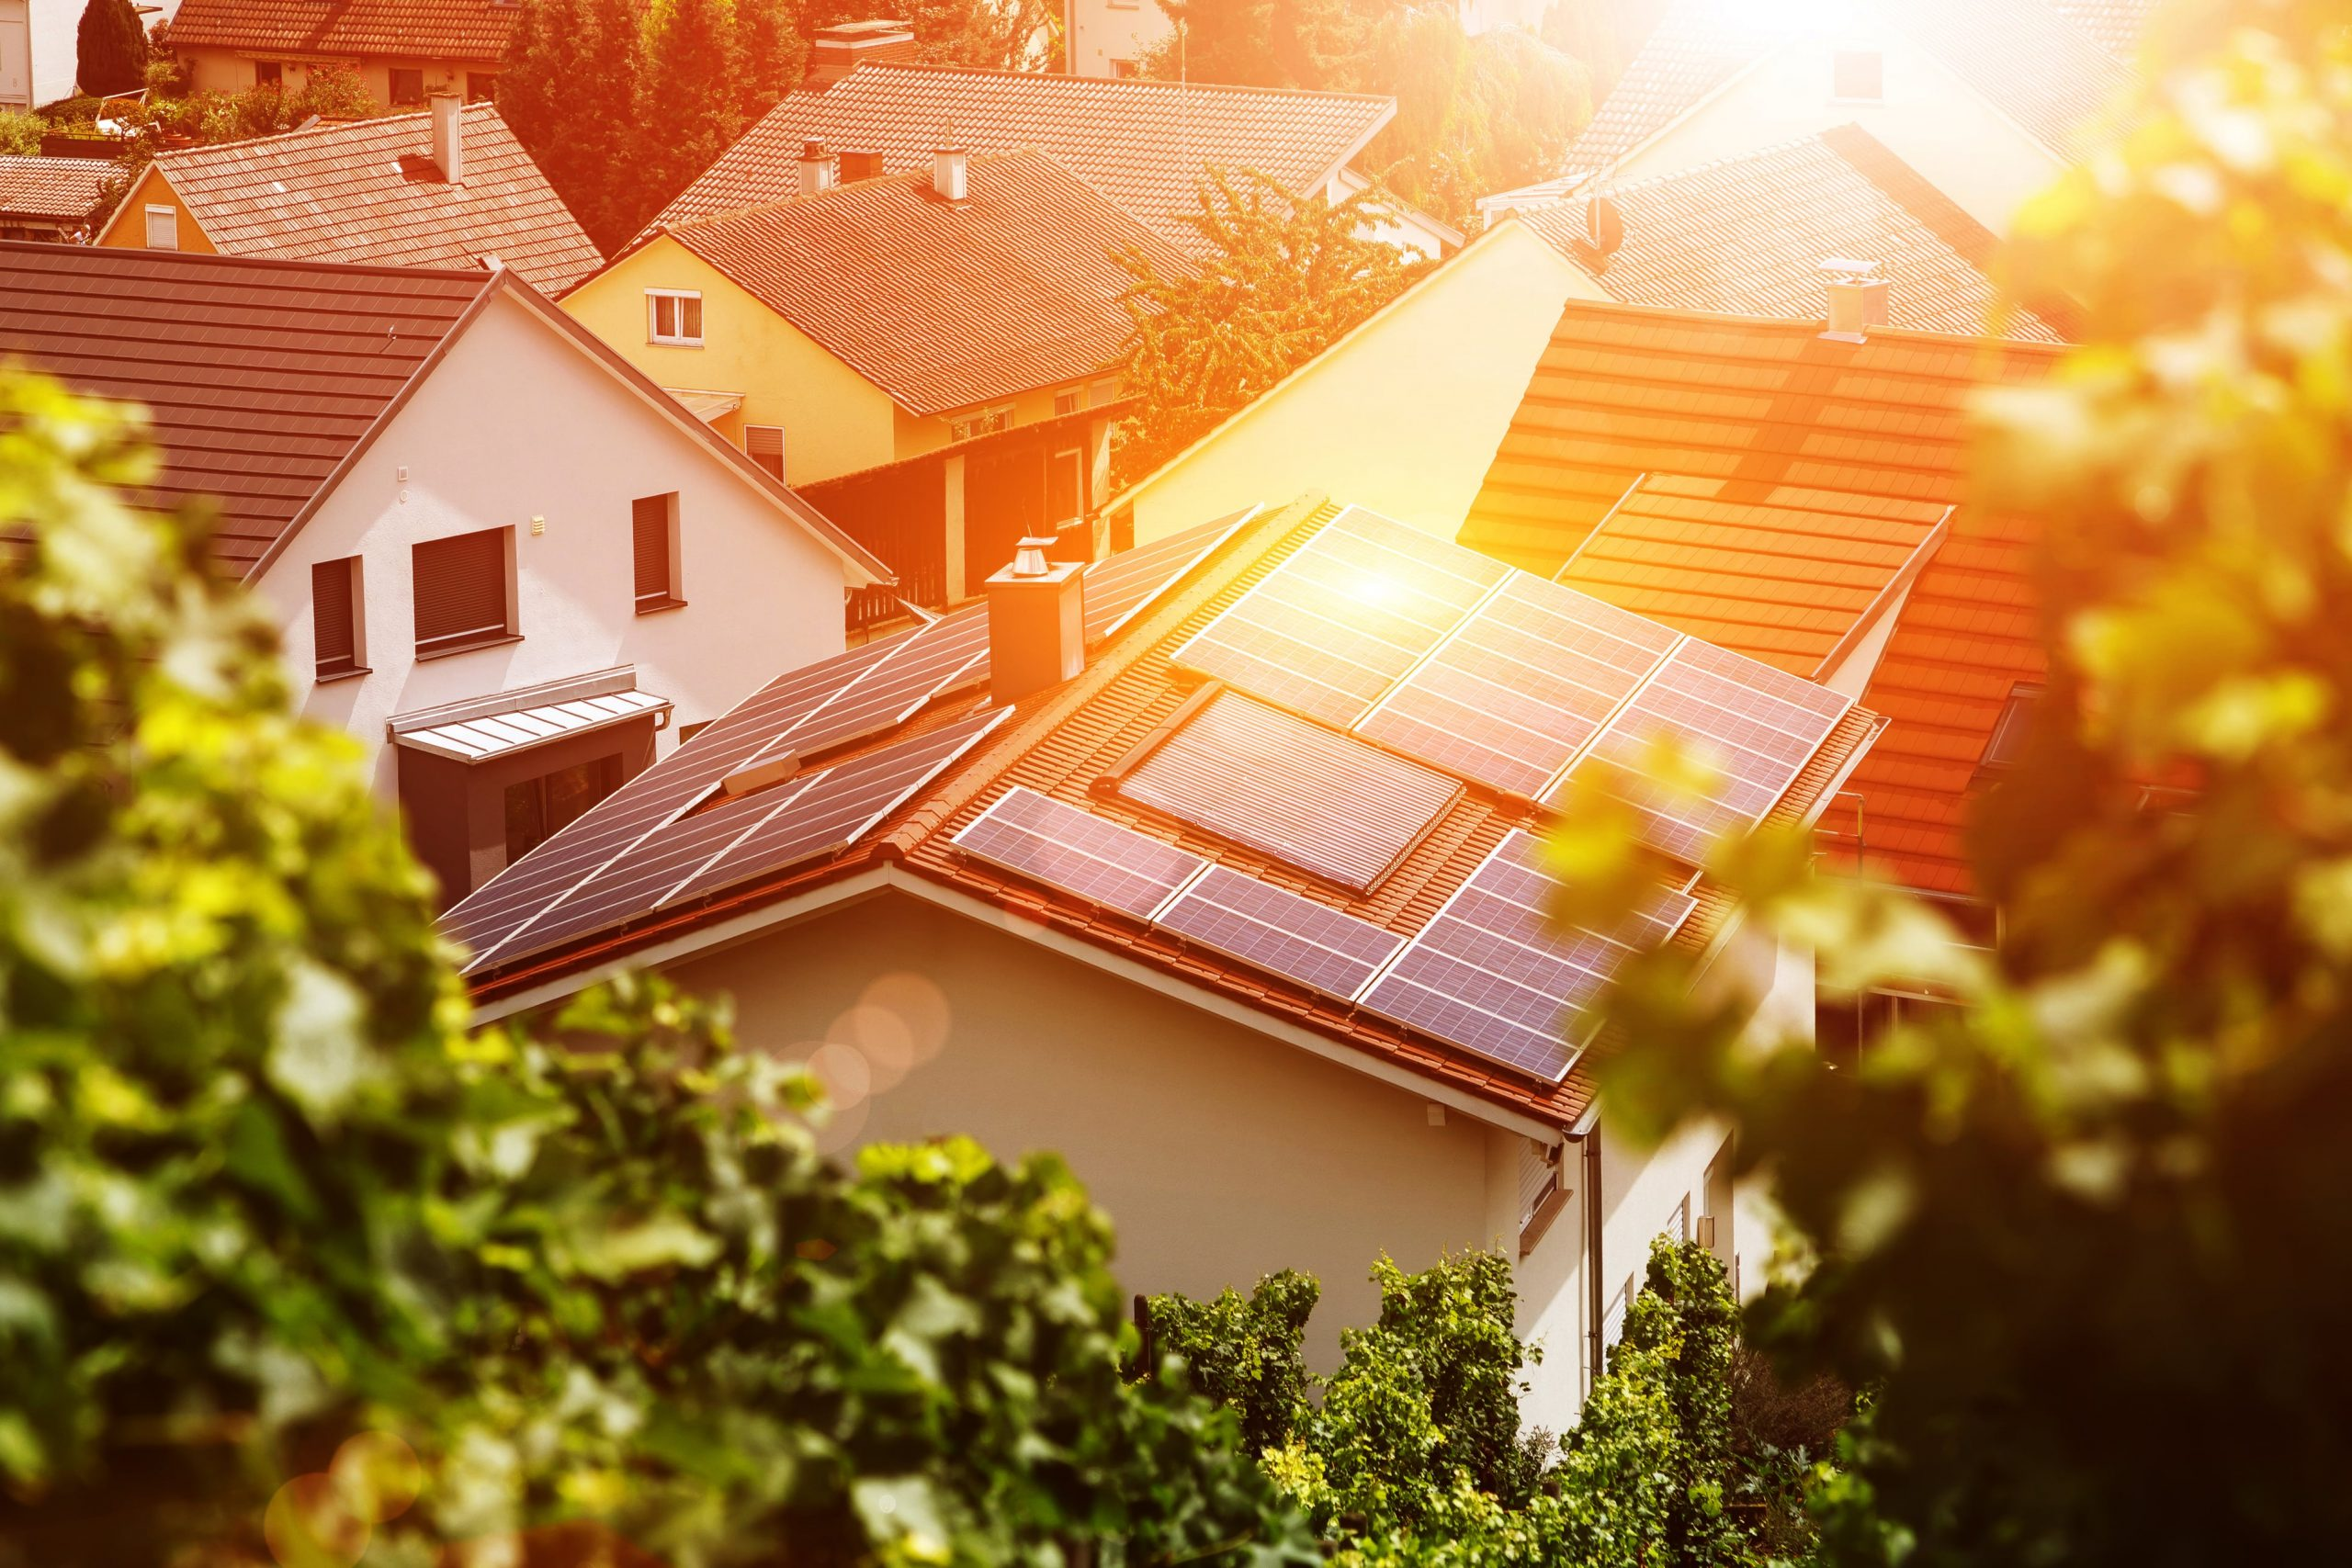 solar panels on the roof of a residential home